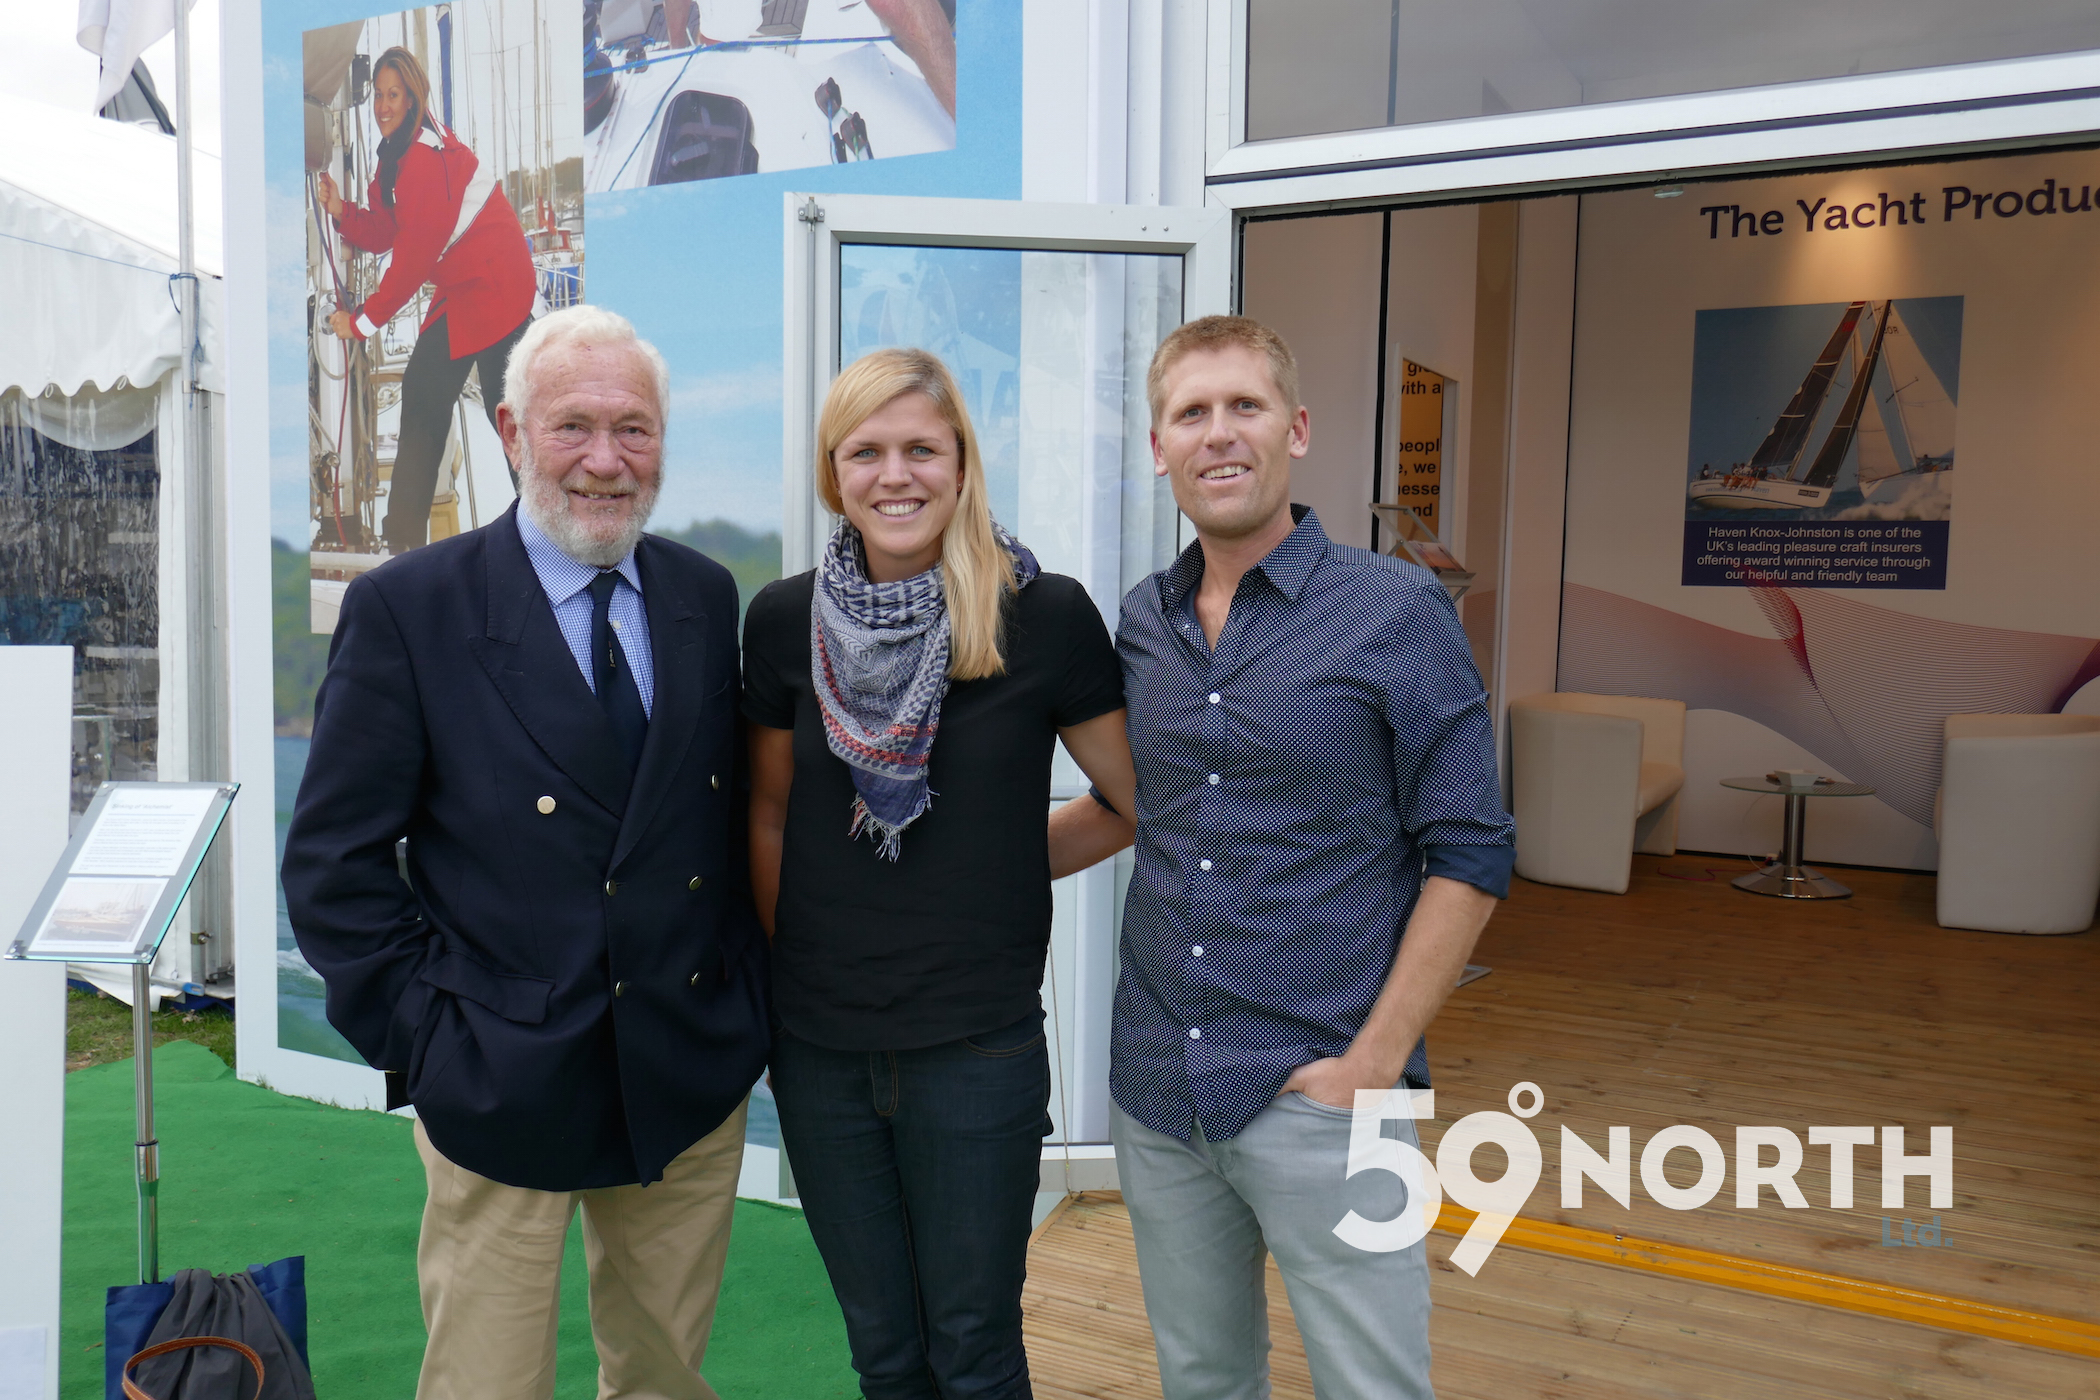 Another highlight of 2016, met up with Sir Robin Knox-Johnson at the Southampton Boat Show for an 'On the wind' chat. Sept. 2016